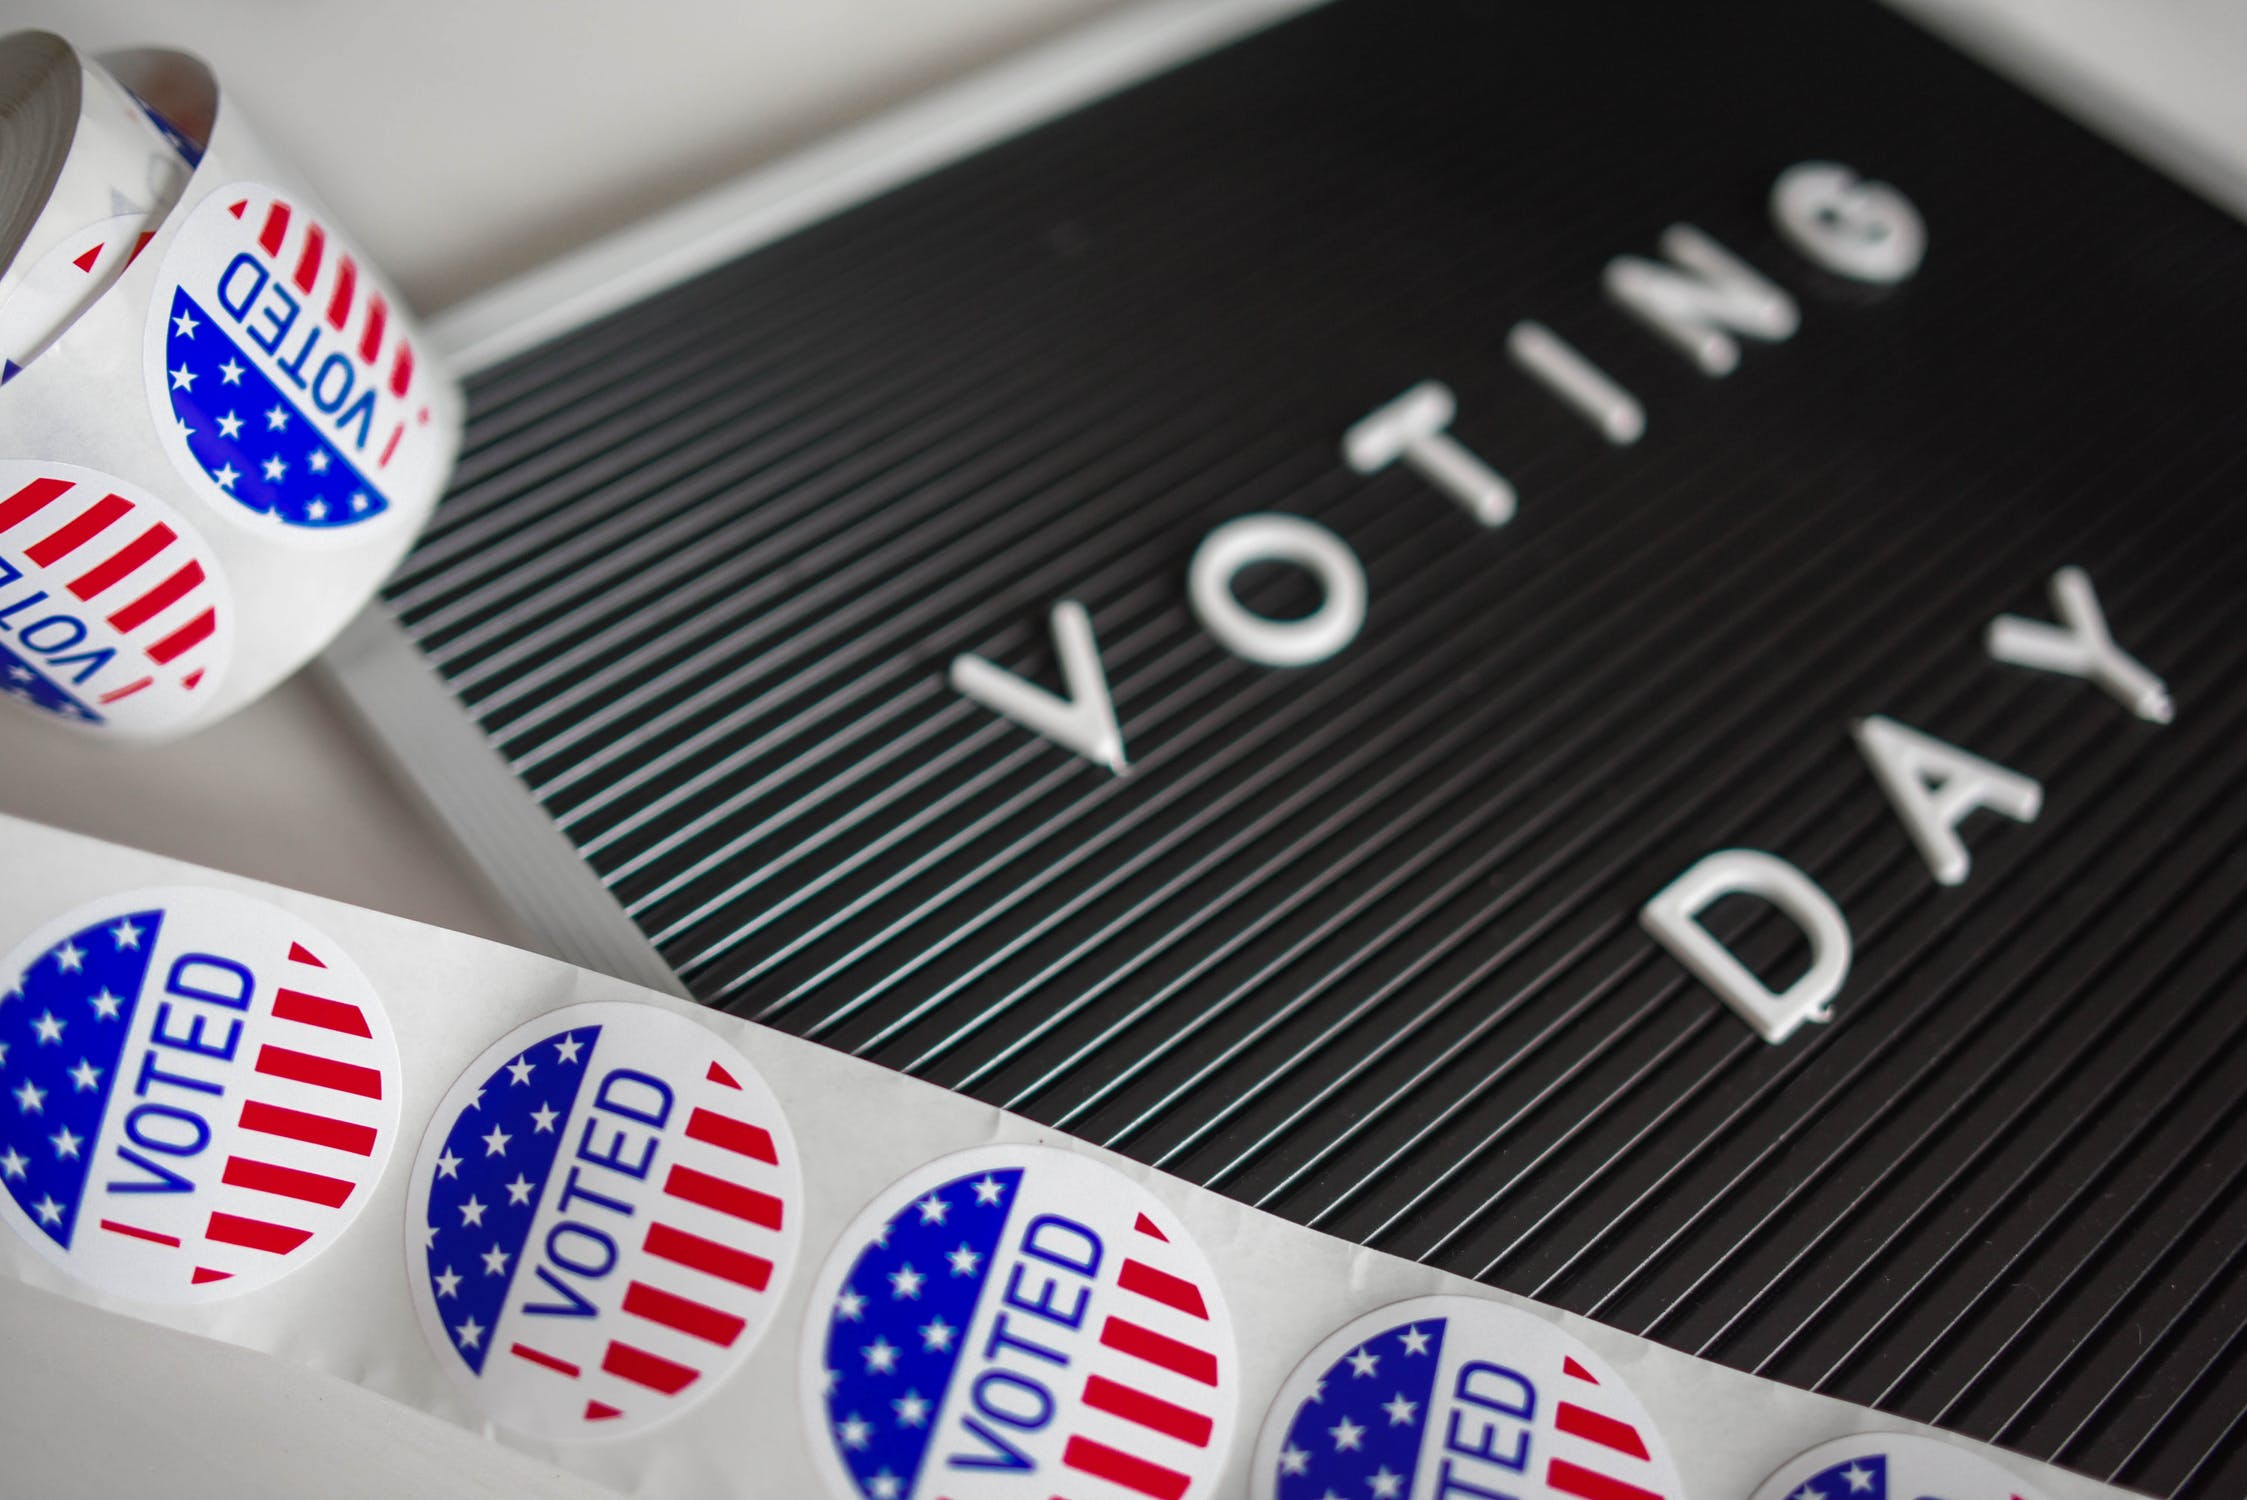 What you need to know about the local measures on the November ballot